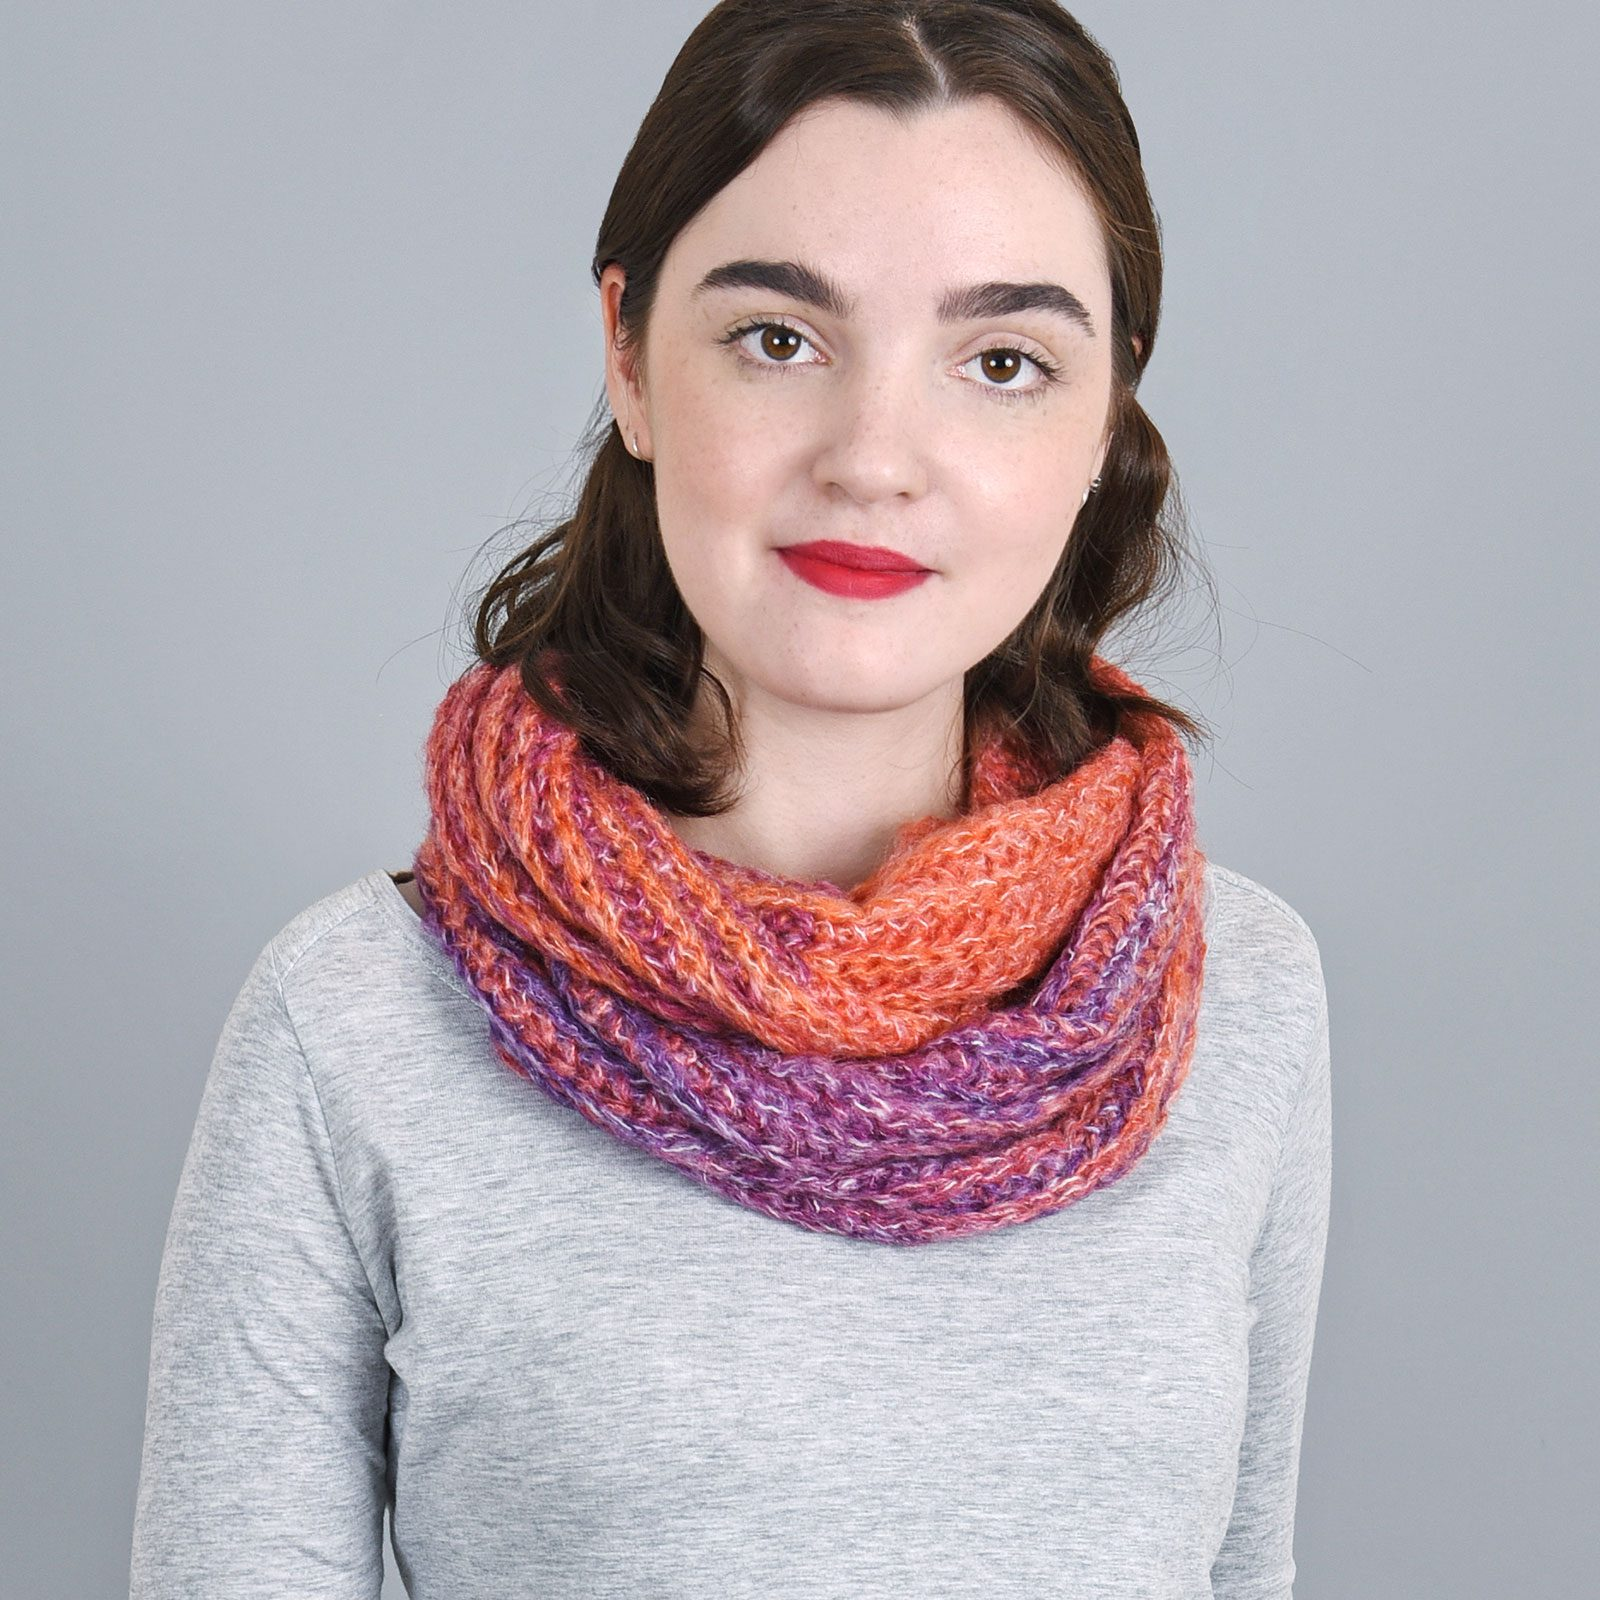 http://lookbook.allee-du-foulard.fr/wp-content/uploads/2018/11/AT-04135-VF16-echarpe-snood-femme-couleur-rouge-violet-1600x1600.jpg